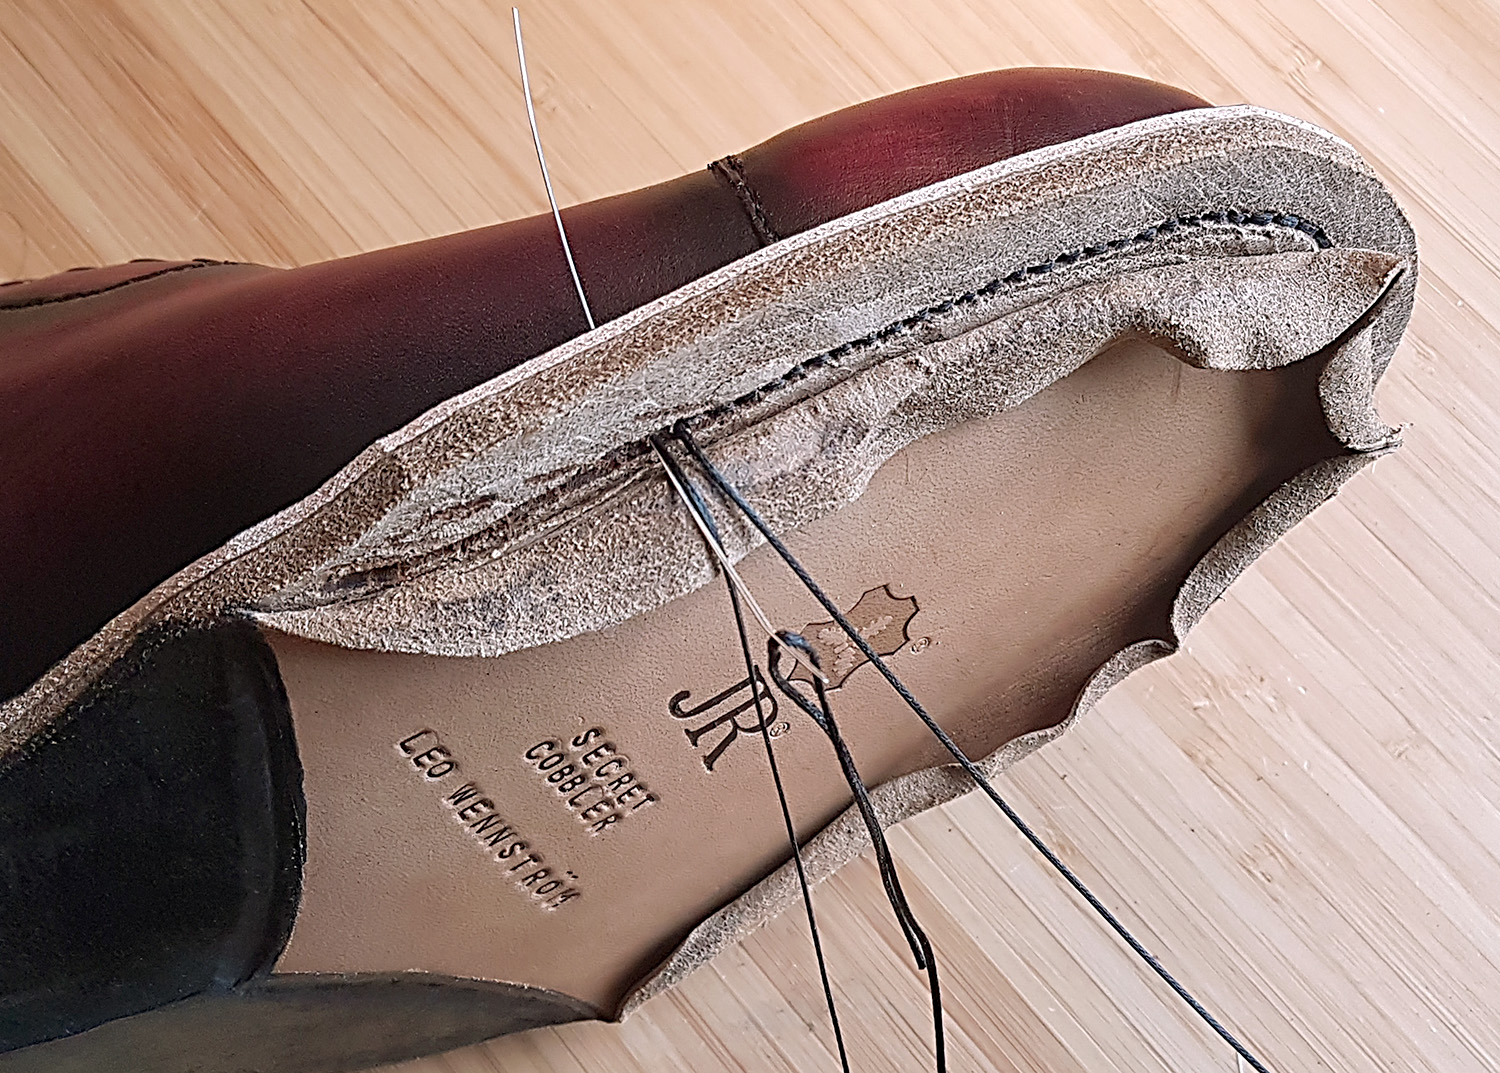 sewing outsole.jpg